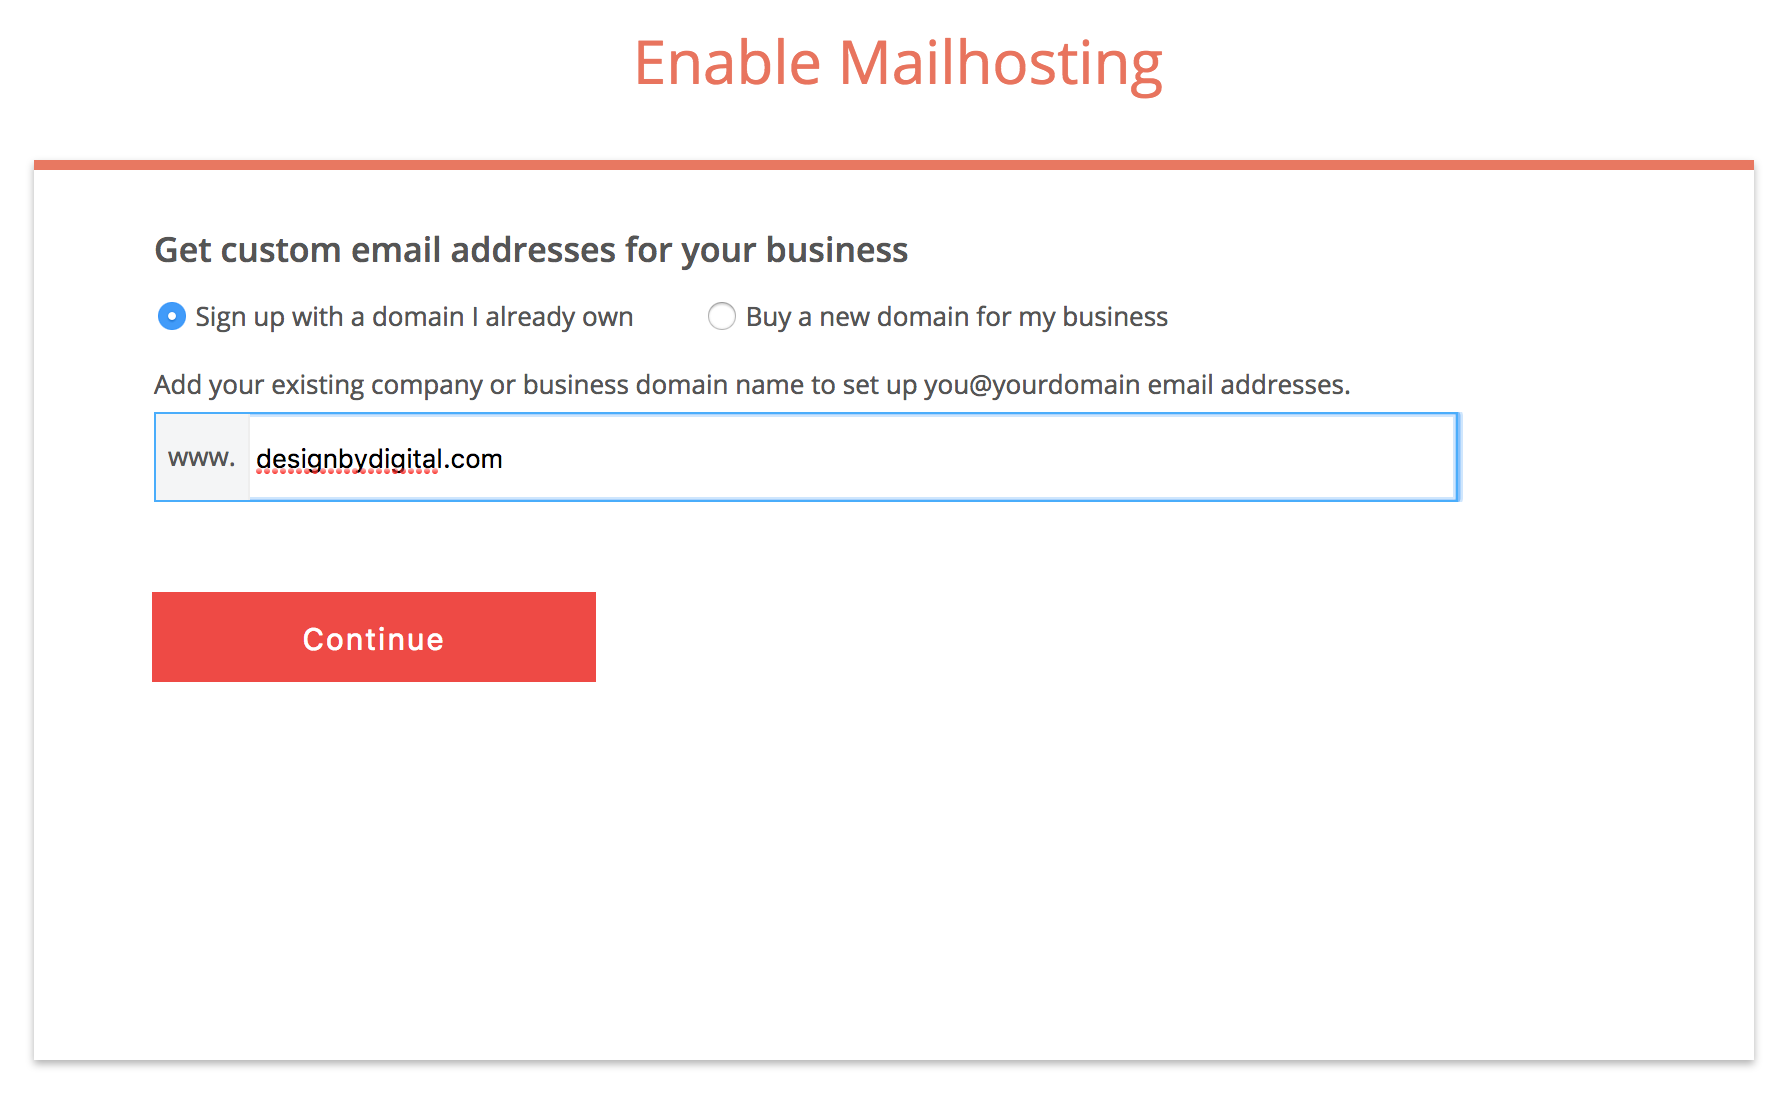 Enable Zoho Mailhosting With A Domain You Already Own